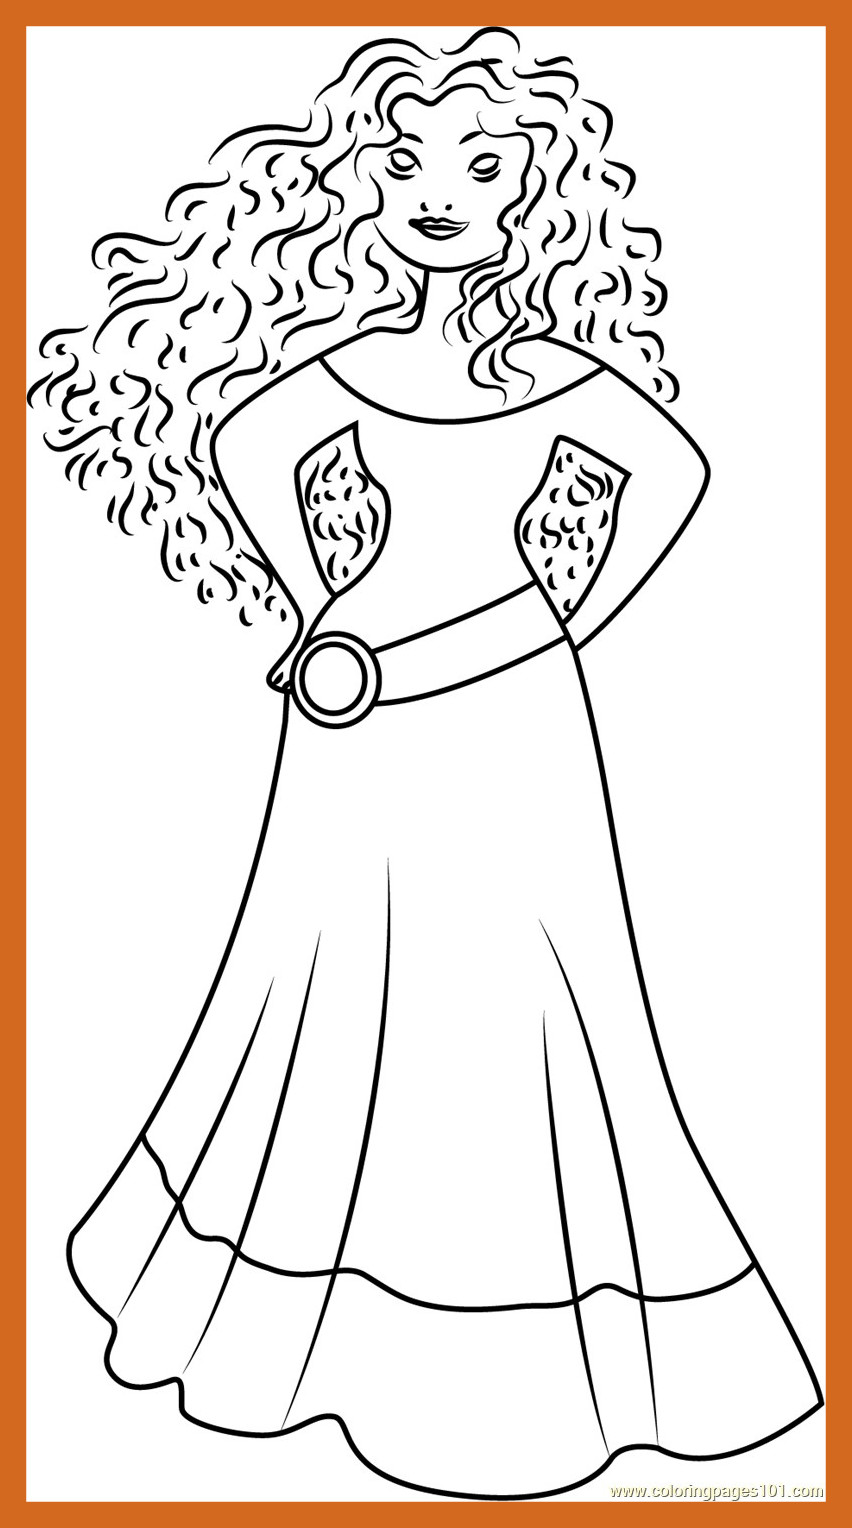 852x1528 Best New Disney Princess Coloring Pages Brave Gallery Printable